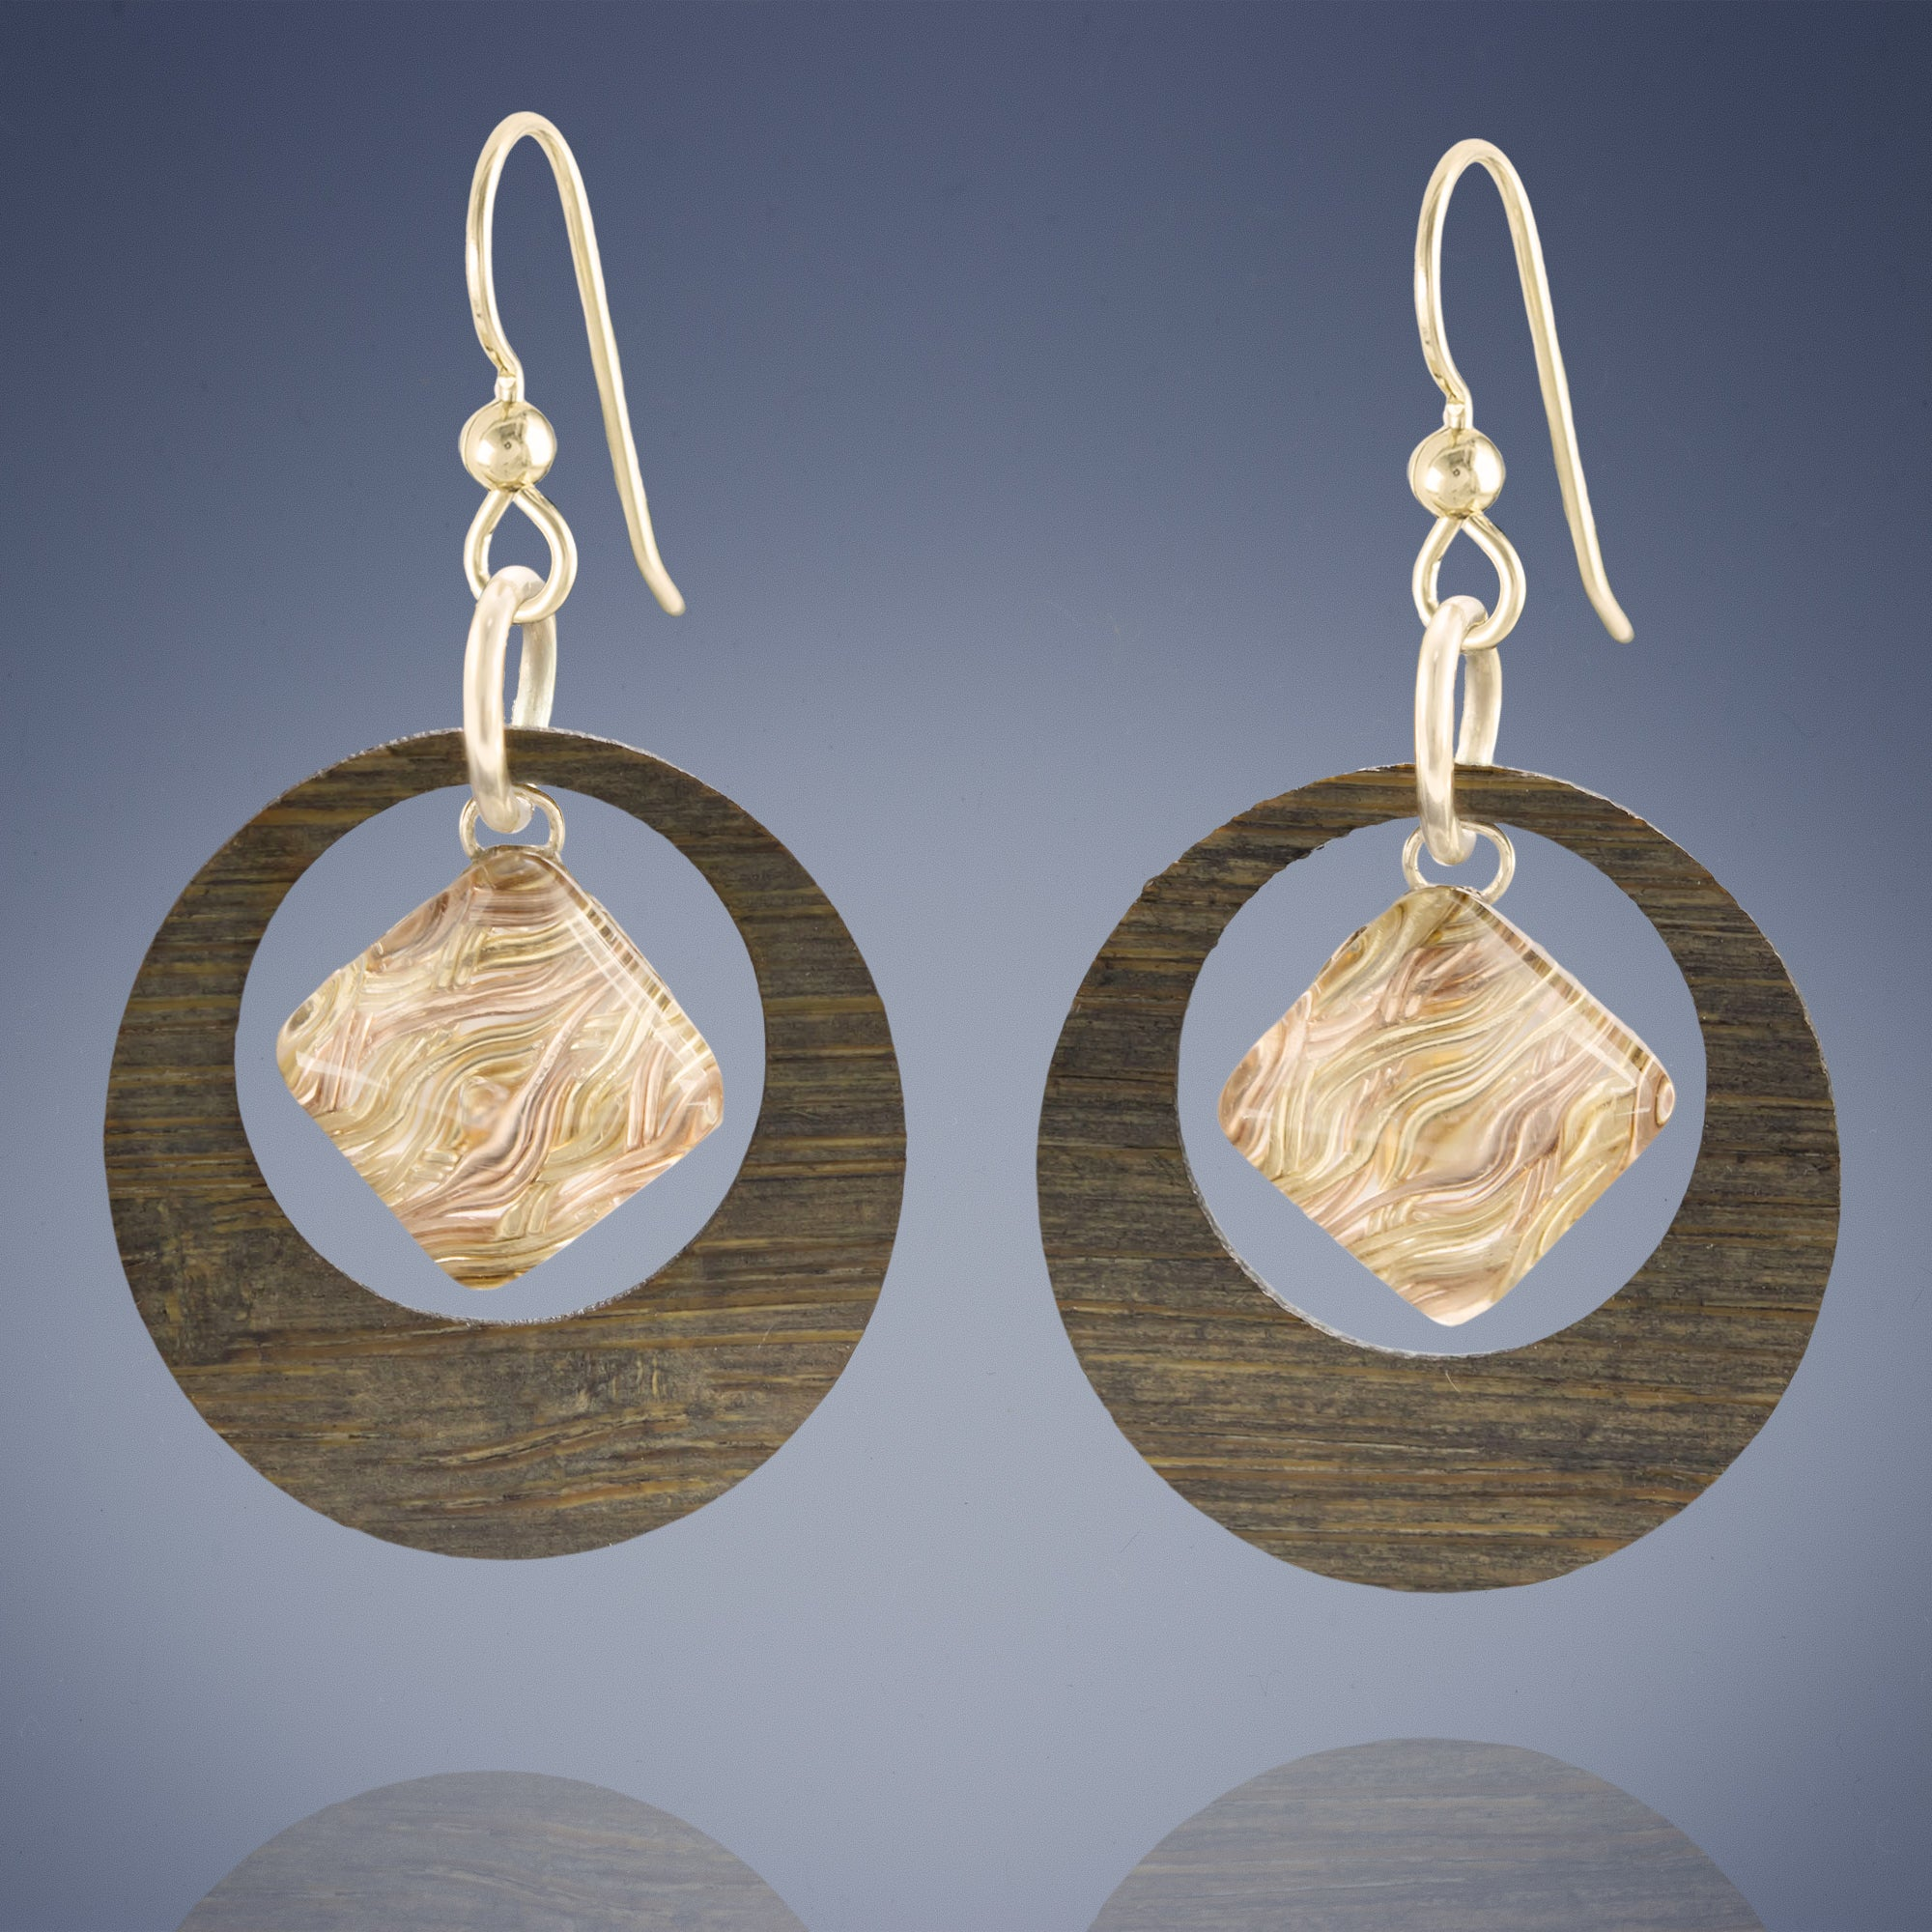 Small Feng Shui Inspired Woven Metal, Glass, and Bamboo Hoop Earrings in Silver or Gold